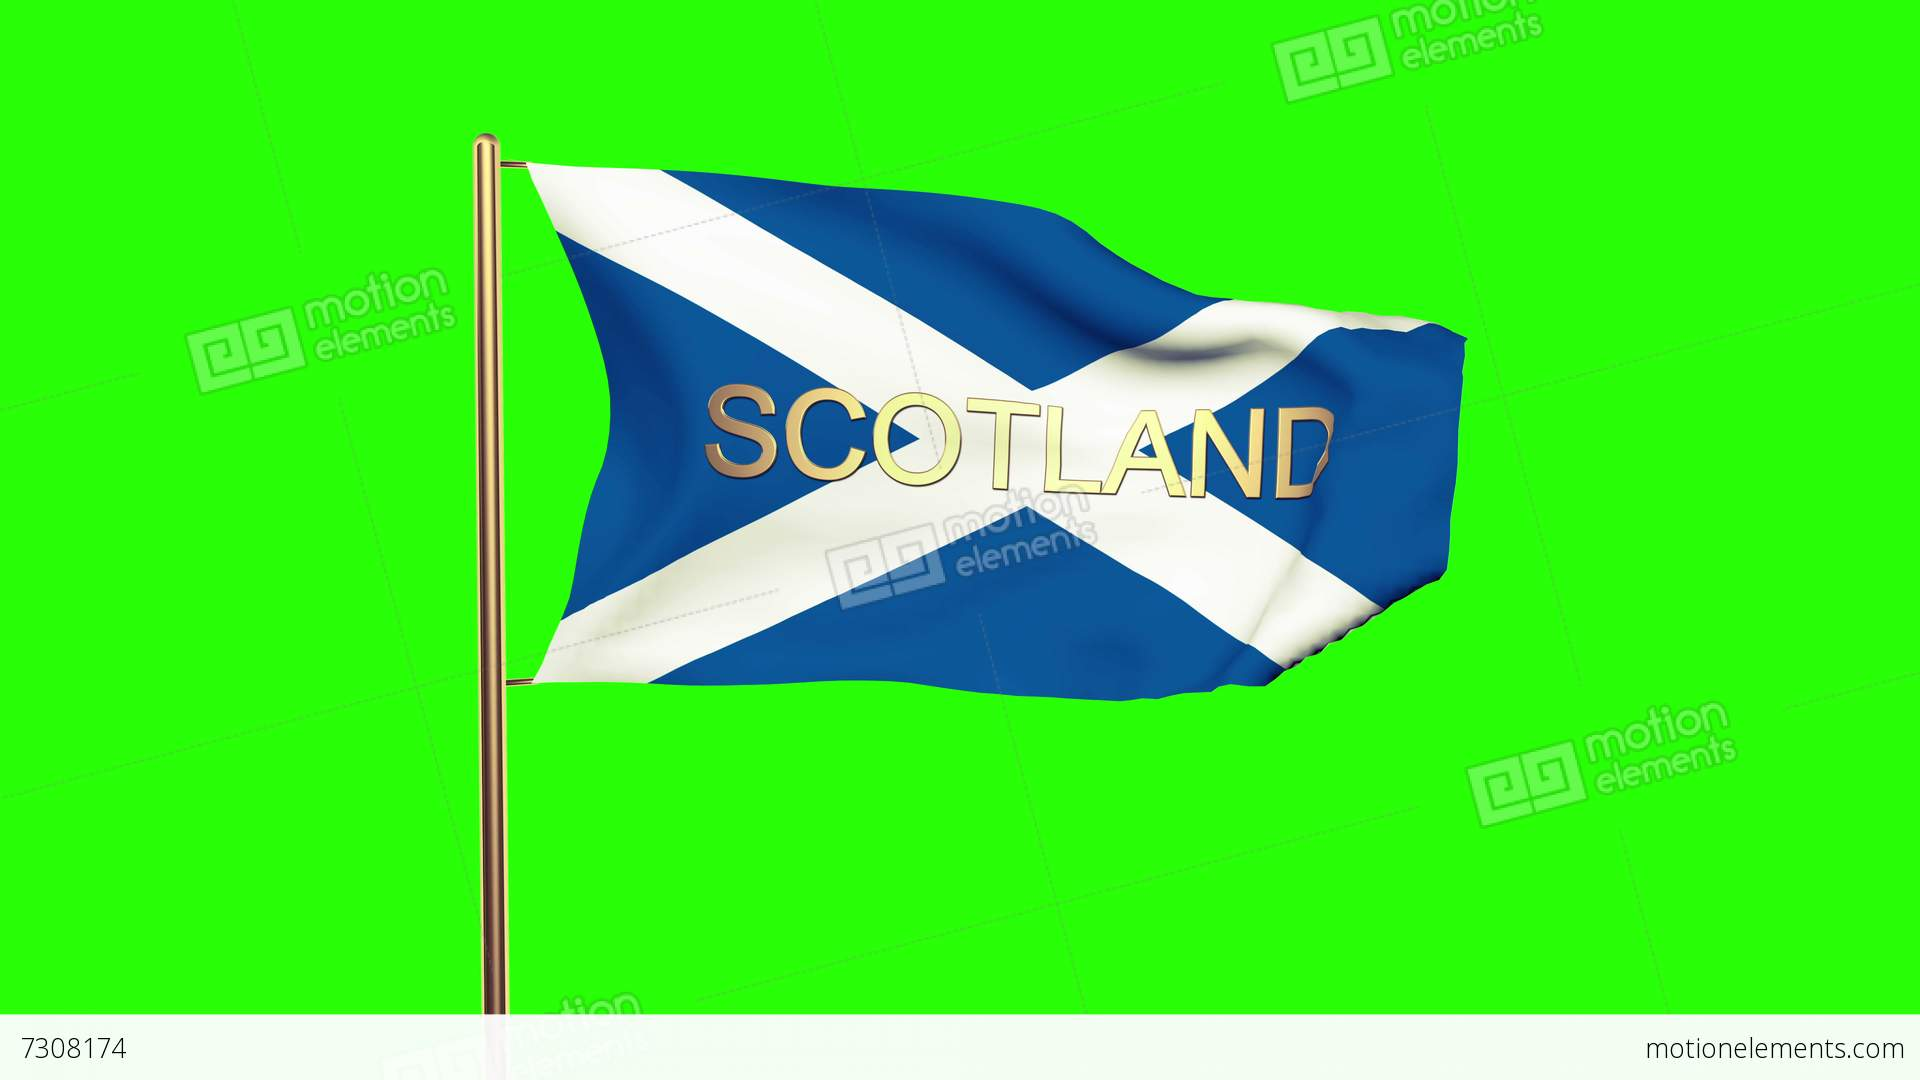 <b>Scottish</b> Desktop Backgrounds Group (77 )